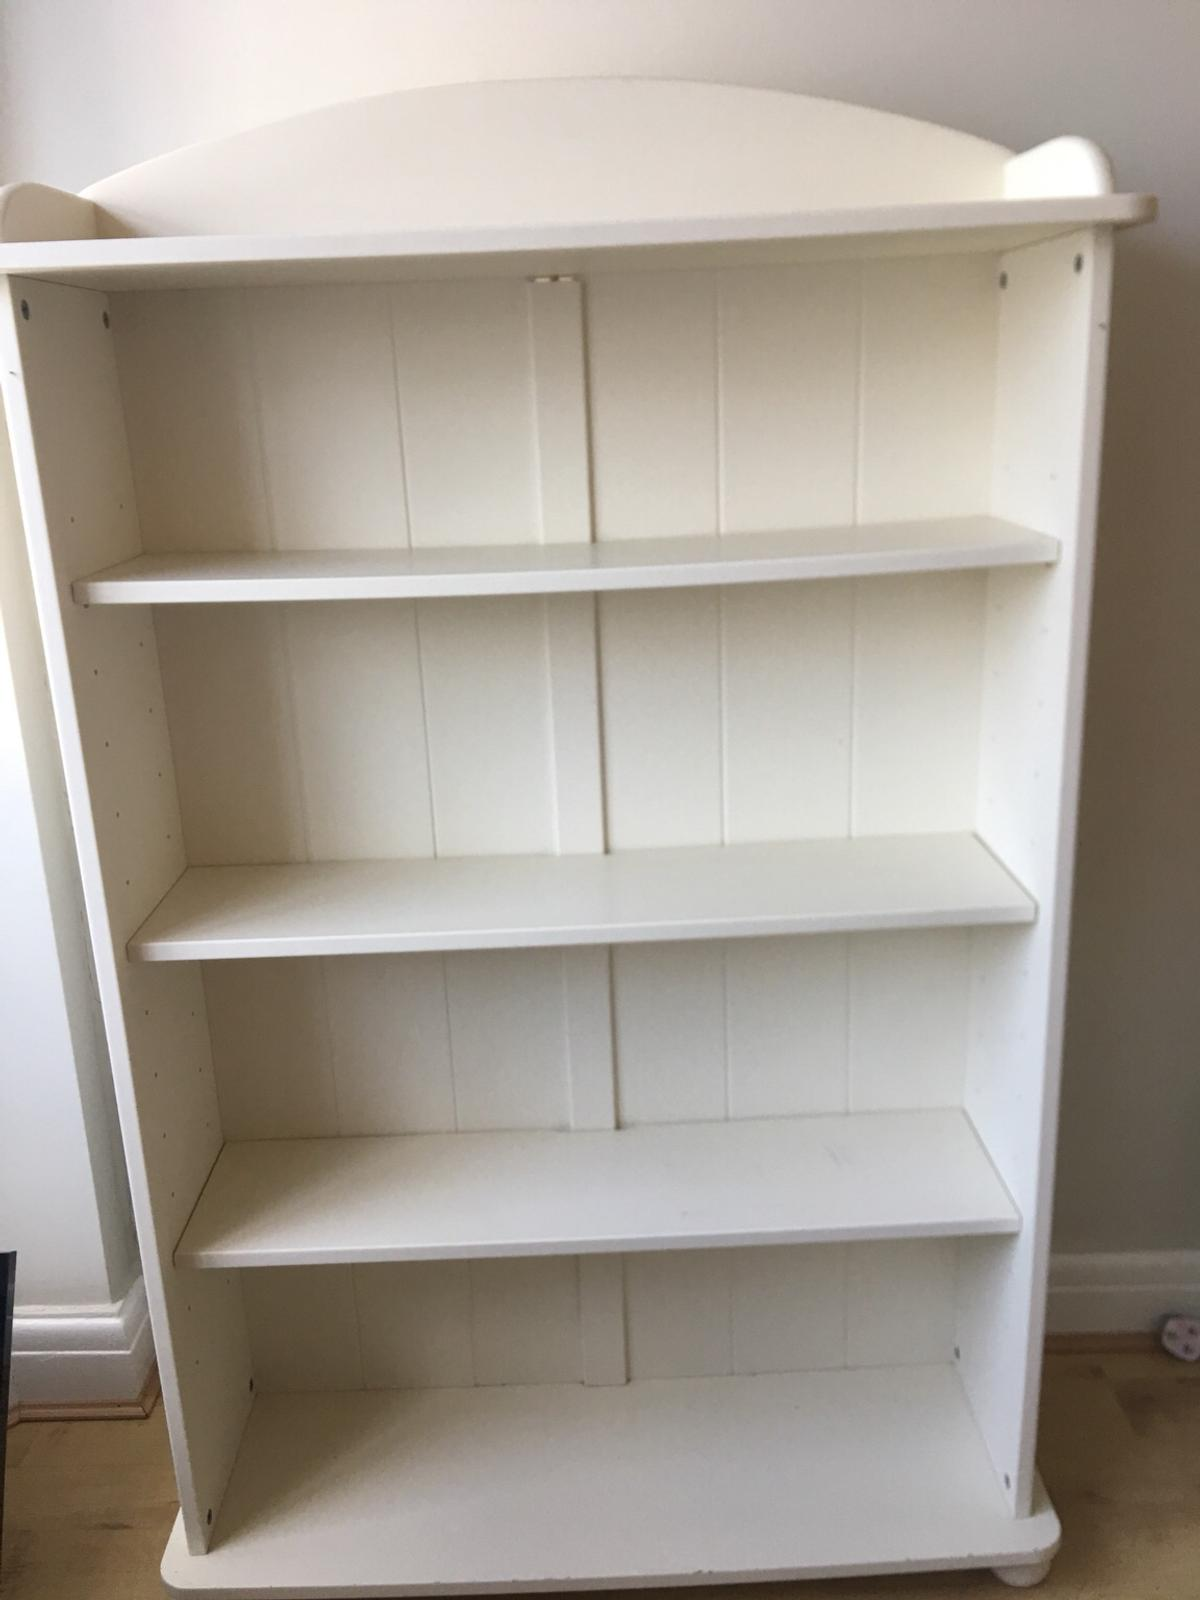 Aspace Antique White Painted Bookcase In L17 Liverpool For